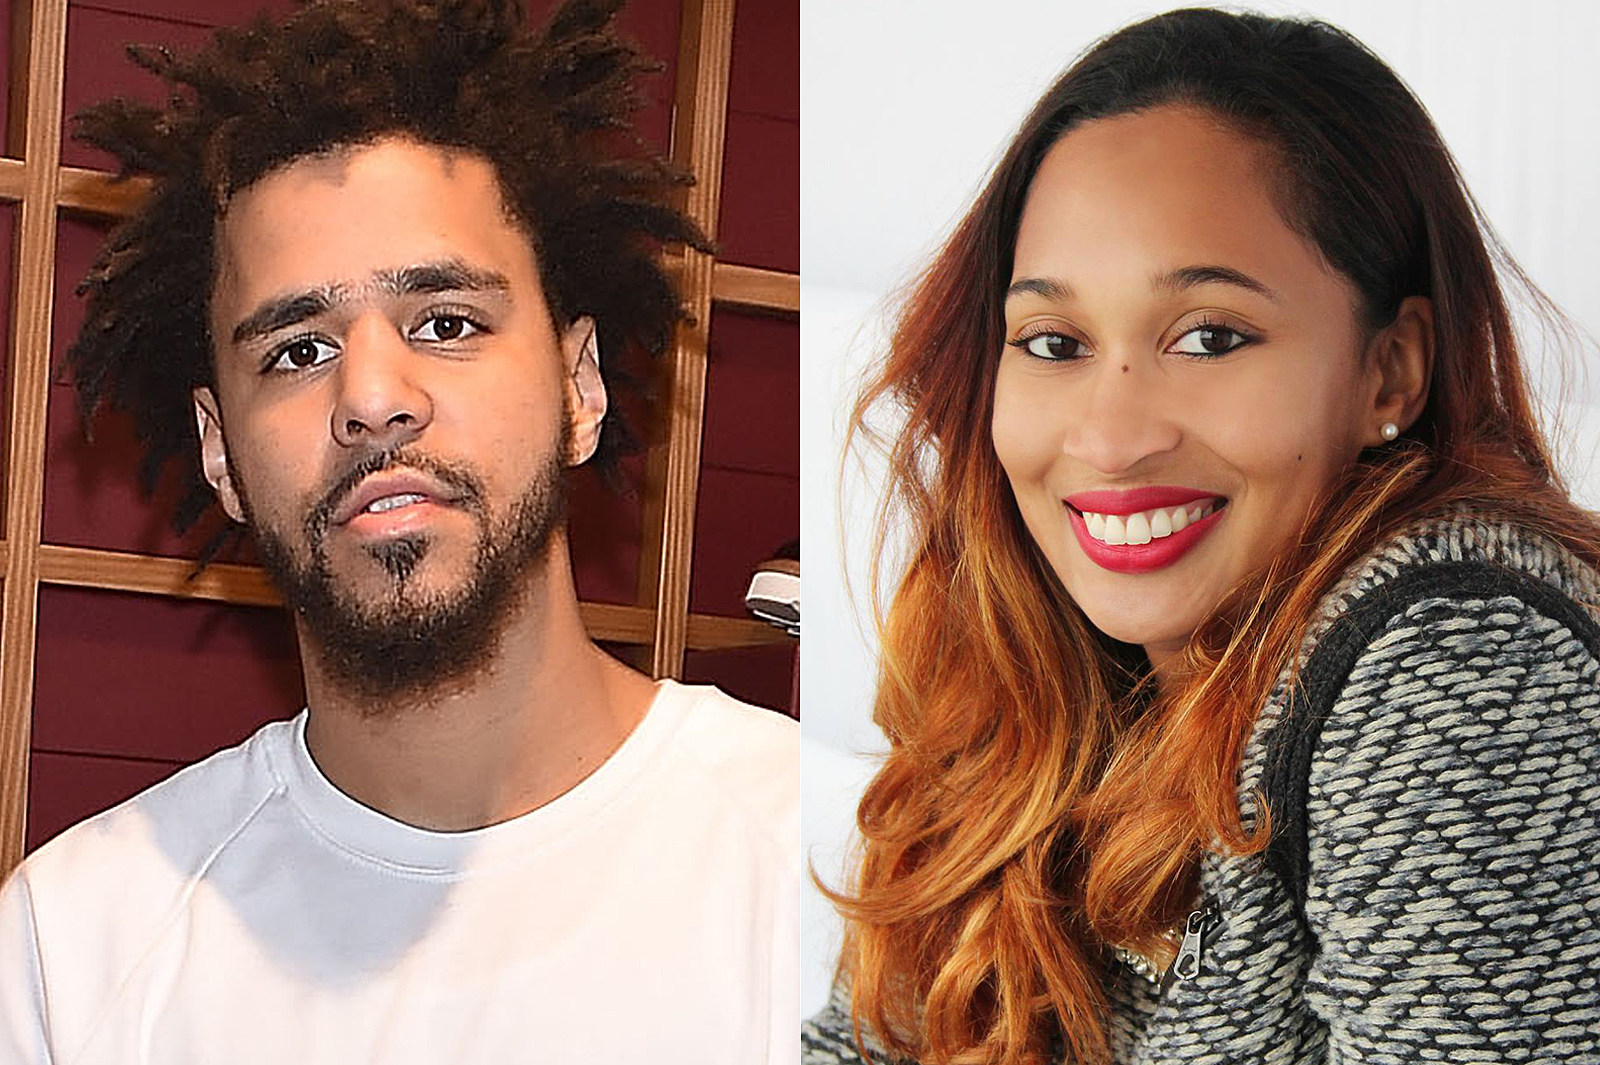 meet j. cole's new wife melissa heholt - xxl